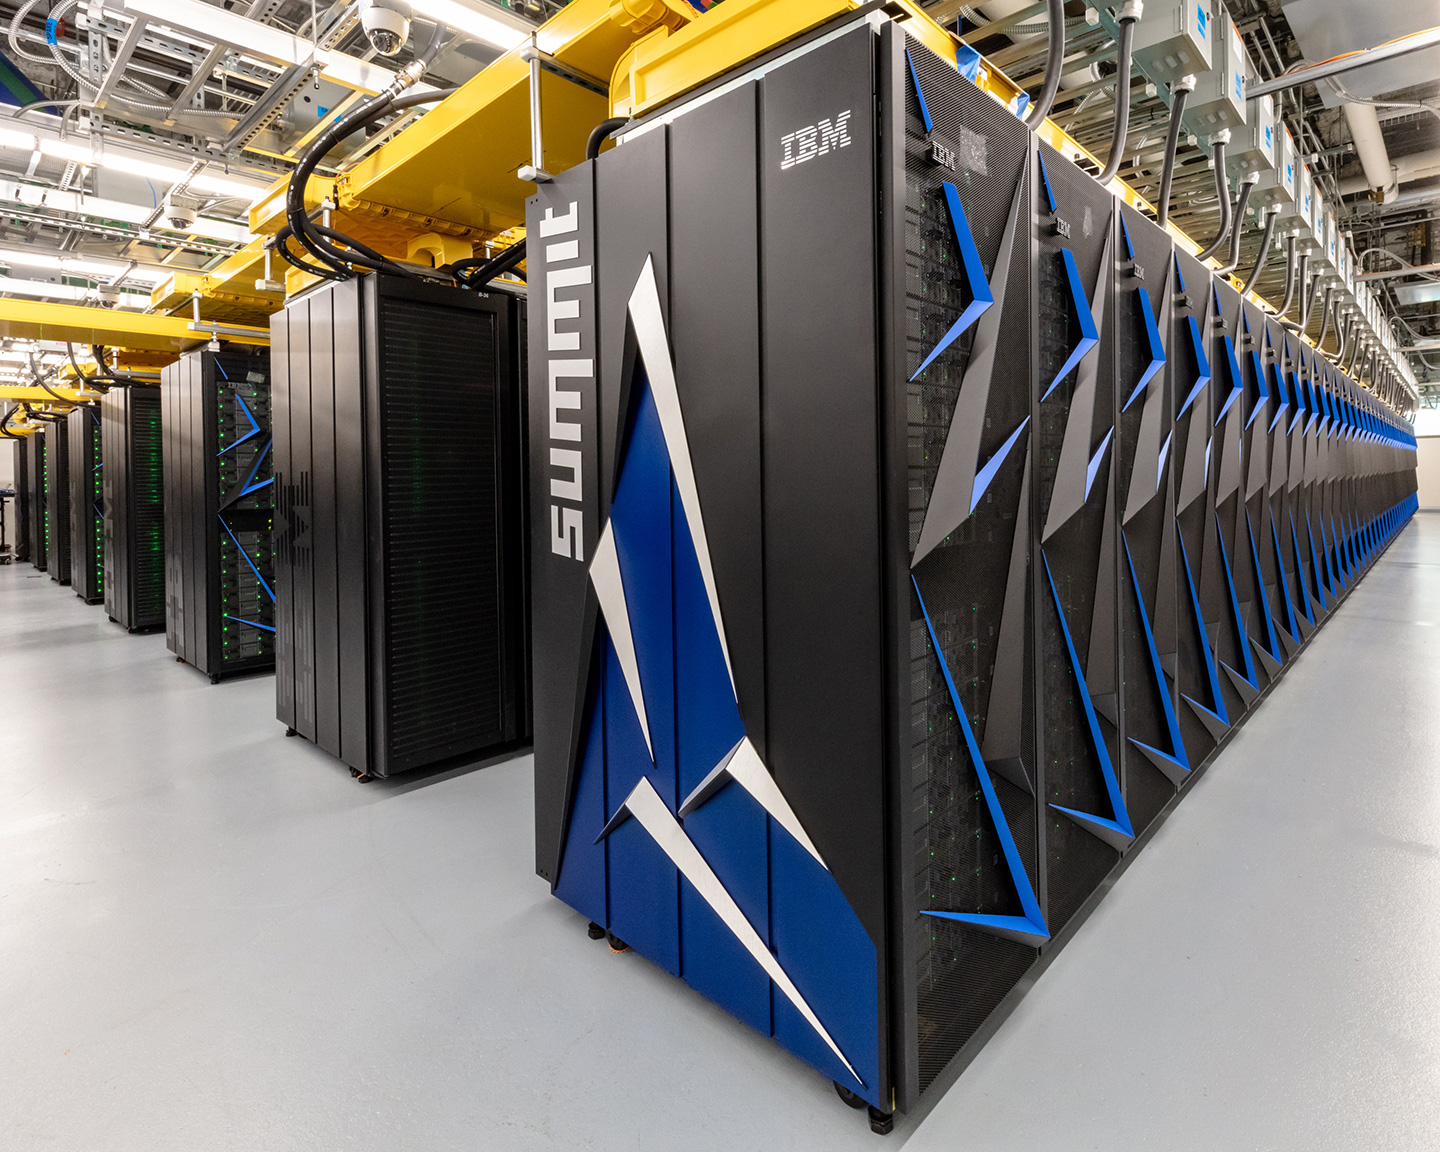 Us Overtakes Chinese Supercomputer To Take Top Spot For